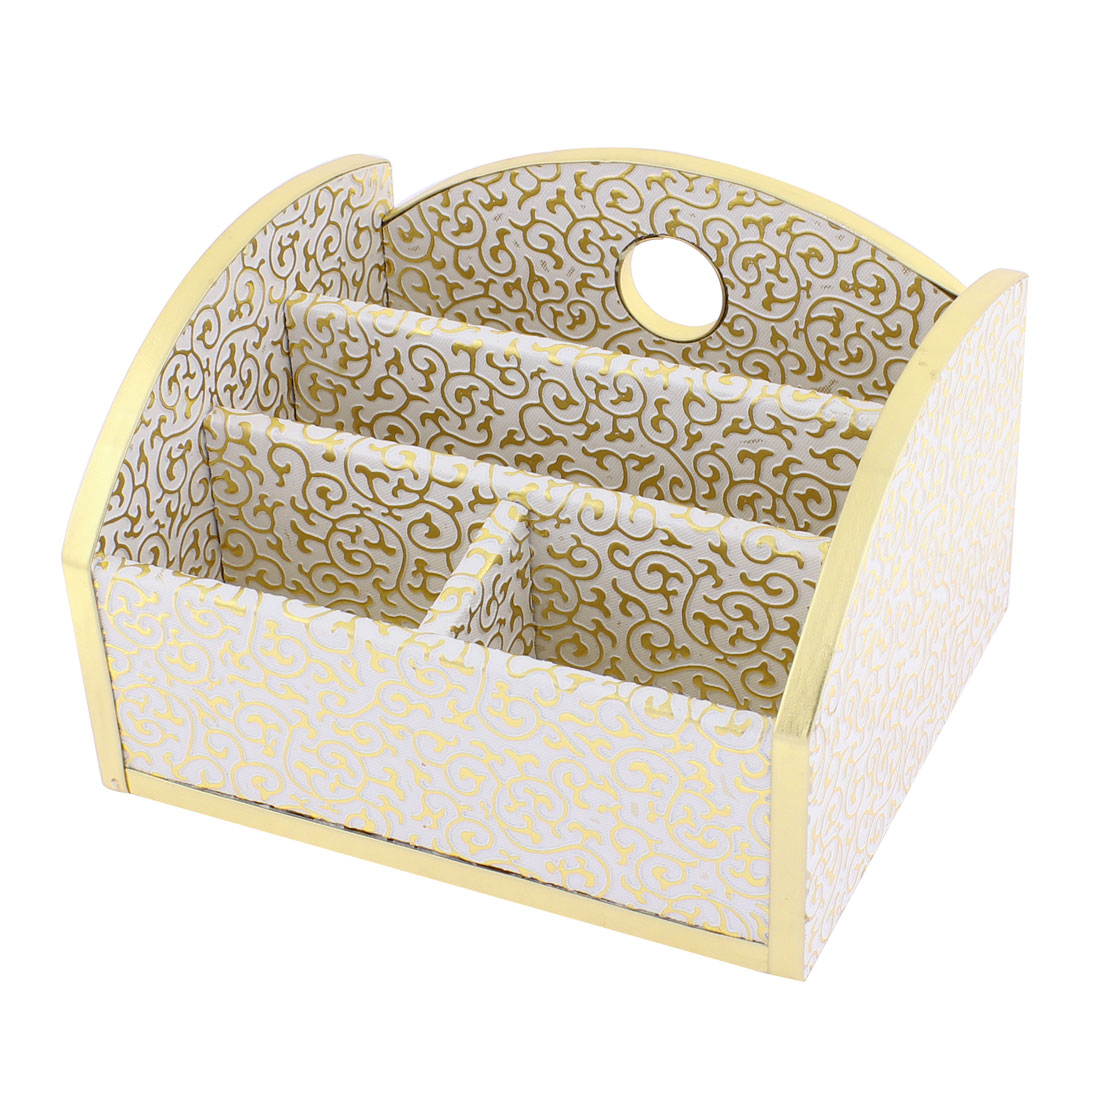 Household Wooden Floral Pattern 4 Rectangle Slots Storage Box White